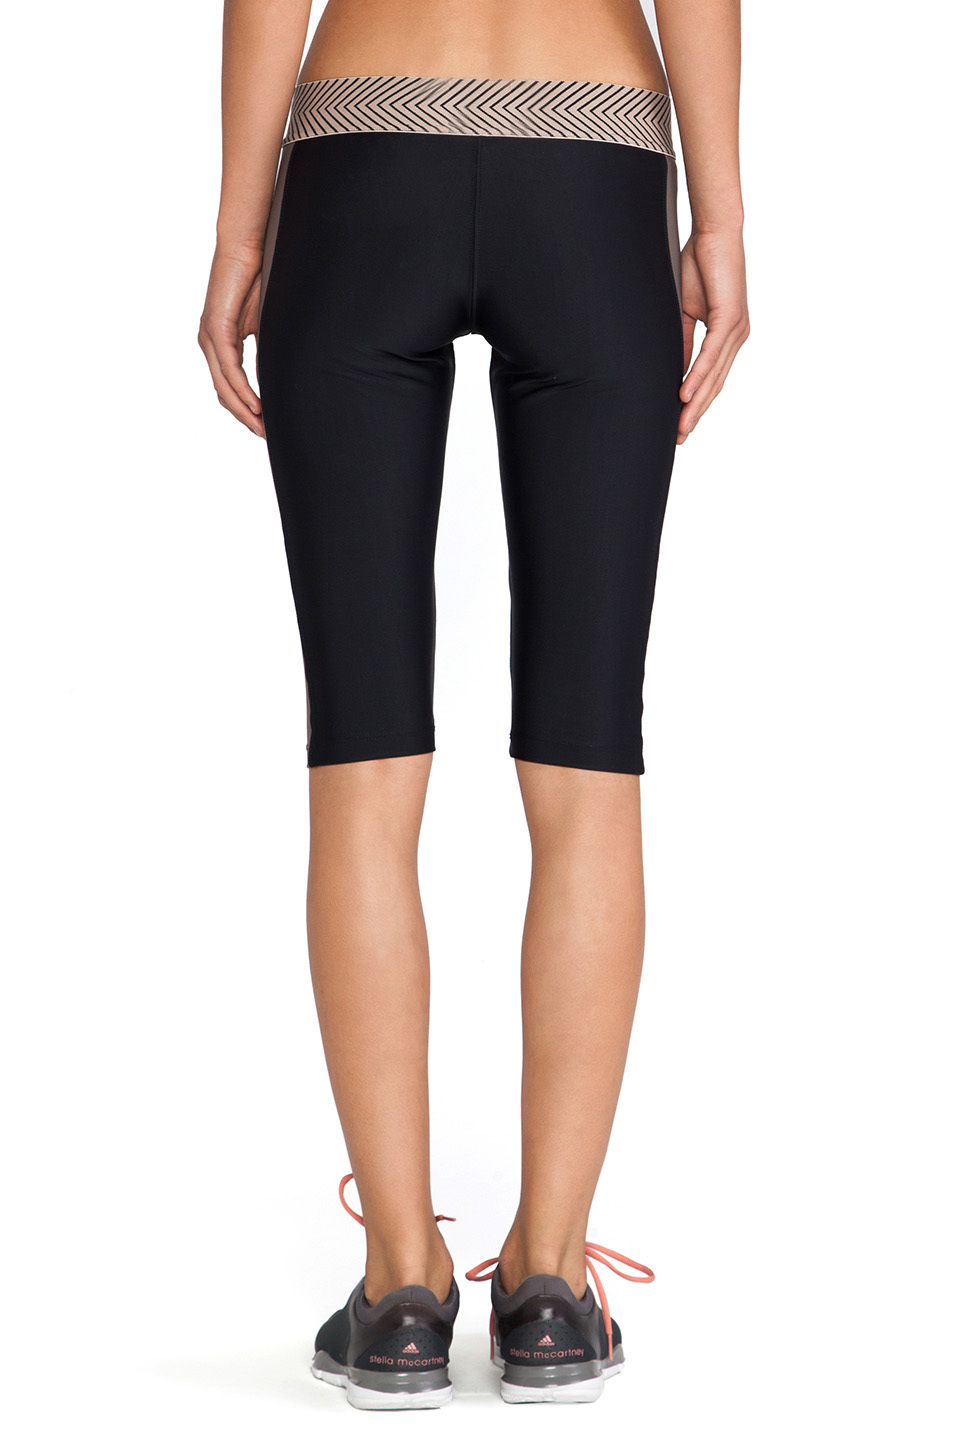 Cheap ladies discount leggings clothing prices, never cheap women's footless leggings clothing products! Discount and wholesale fashion women bulk clothing and women's apparel at bulk discount clothes prices for clothing and apparel stores as well as wholesale clothing .